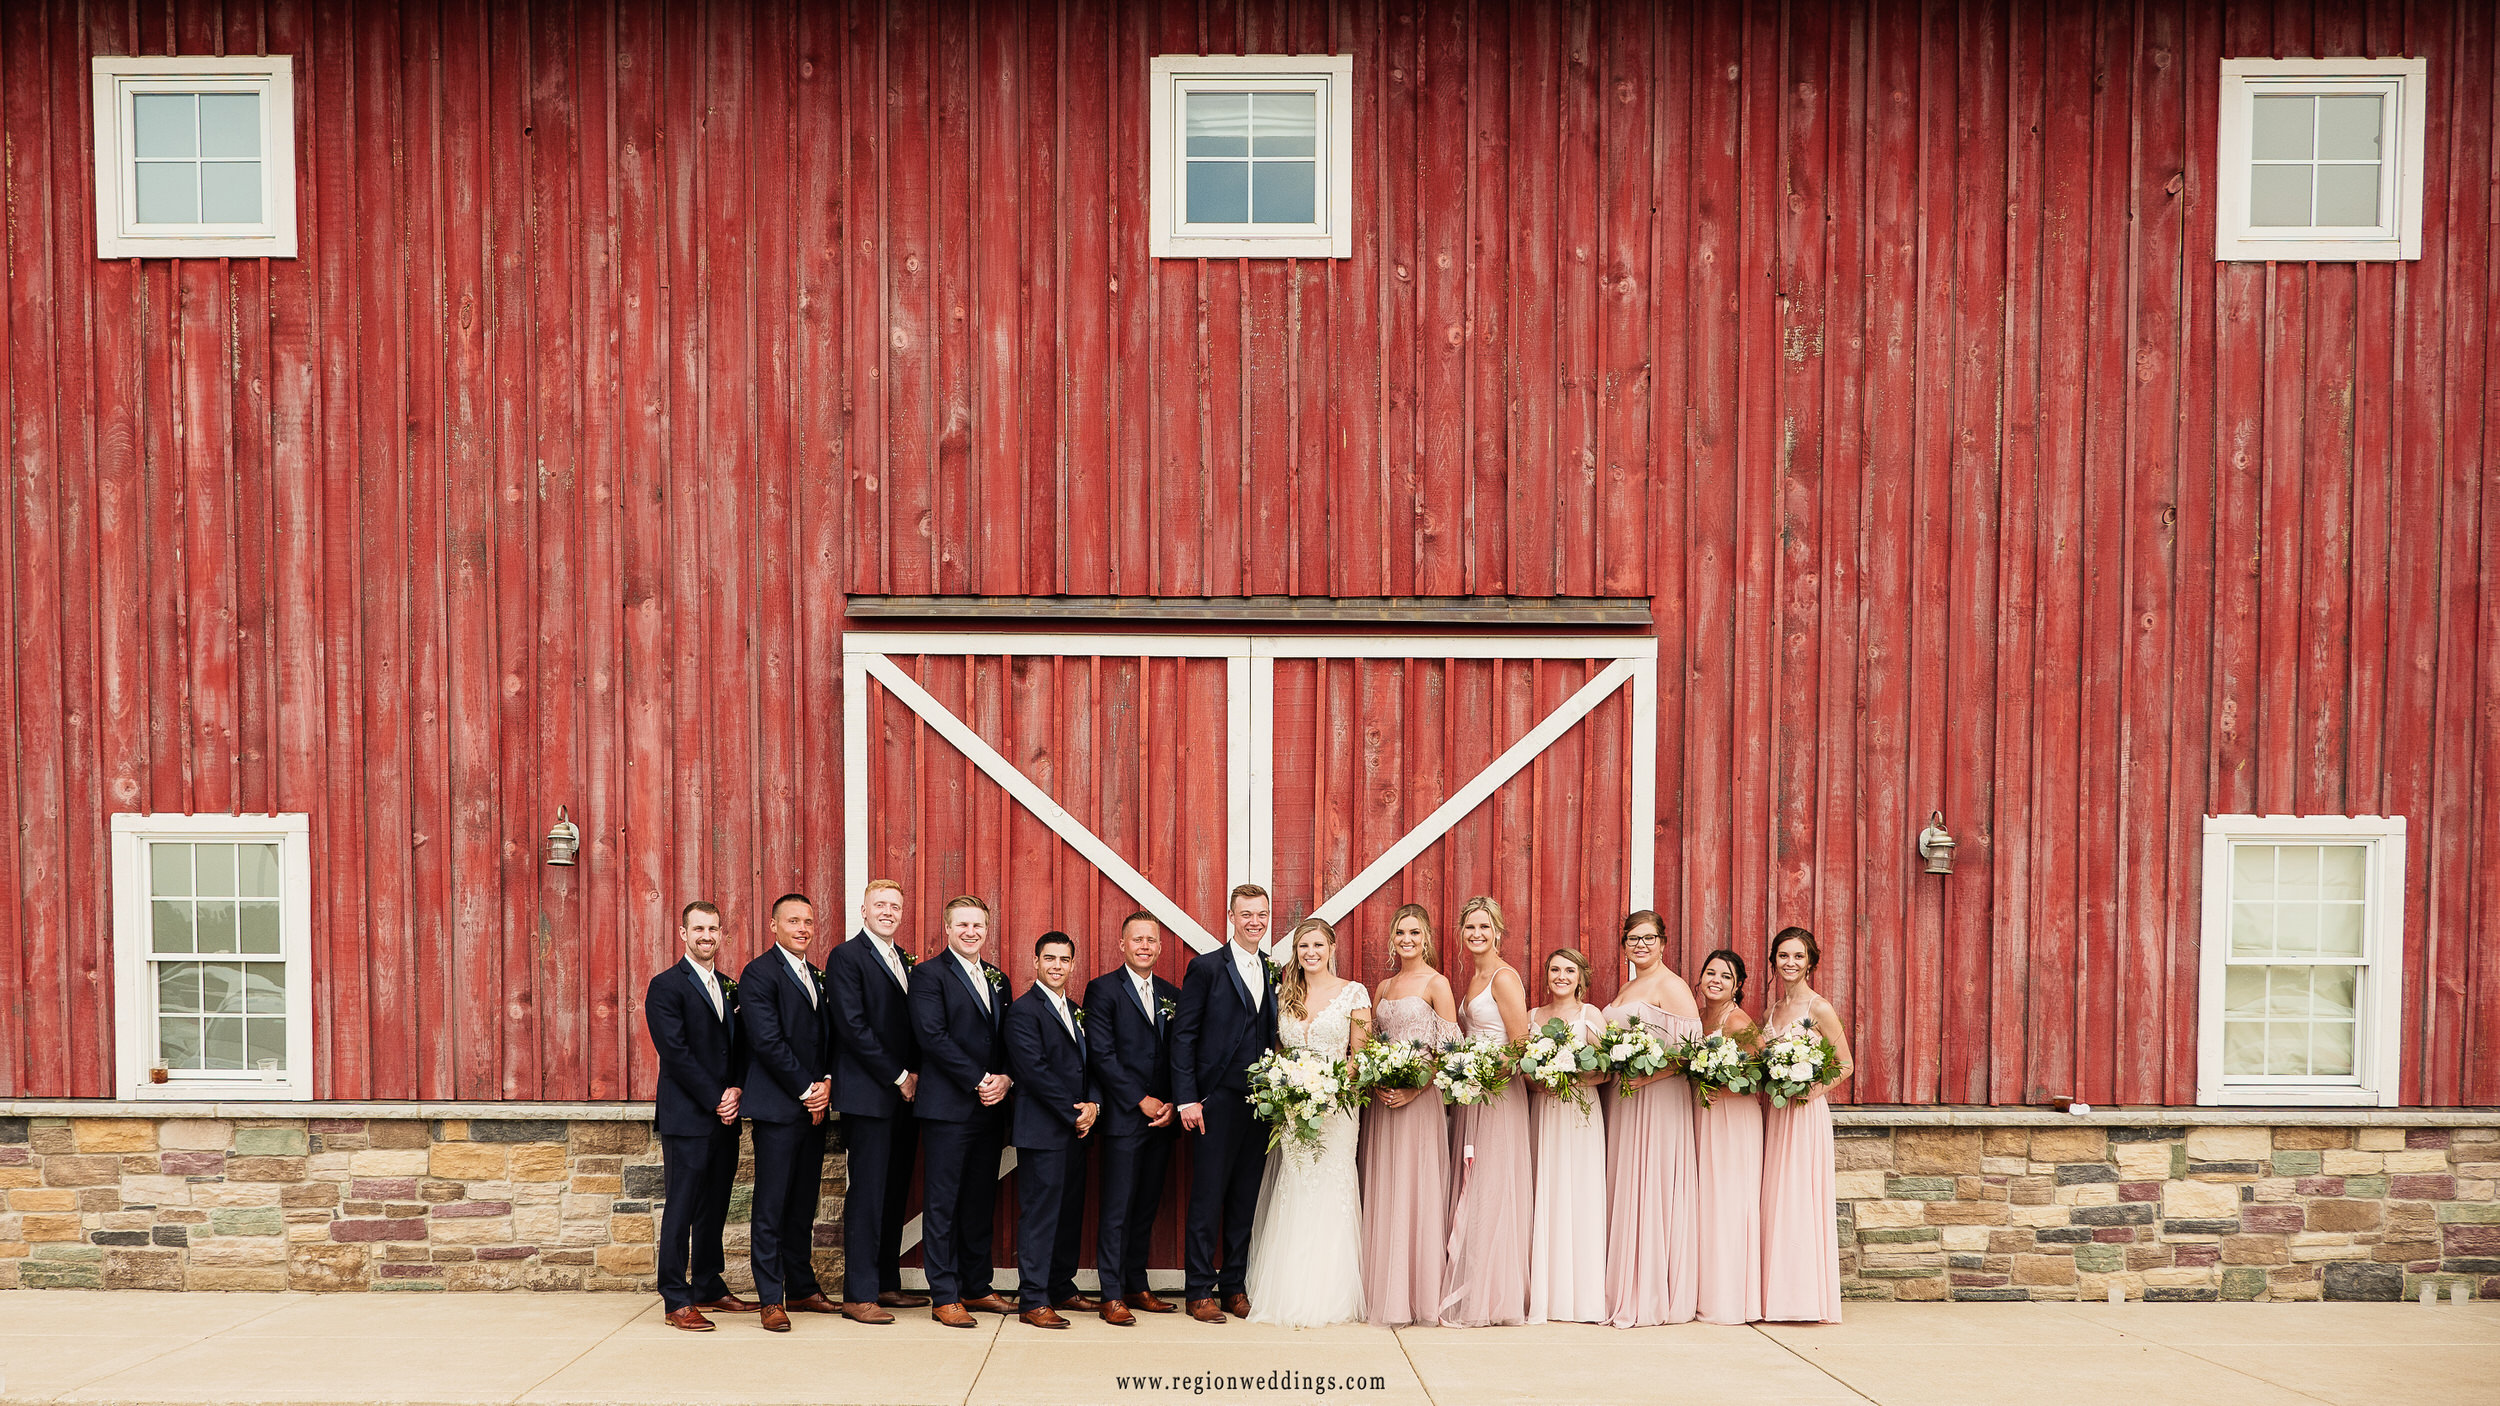 A wedding party group photo in front of the big red barn.